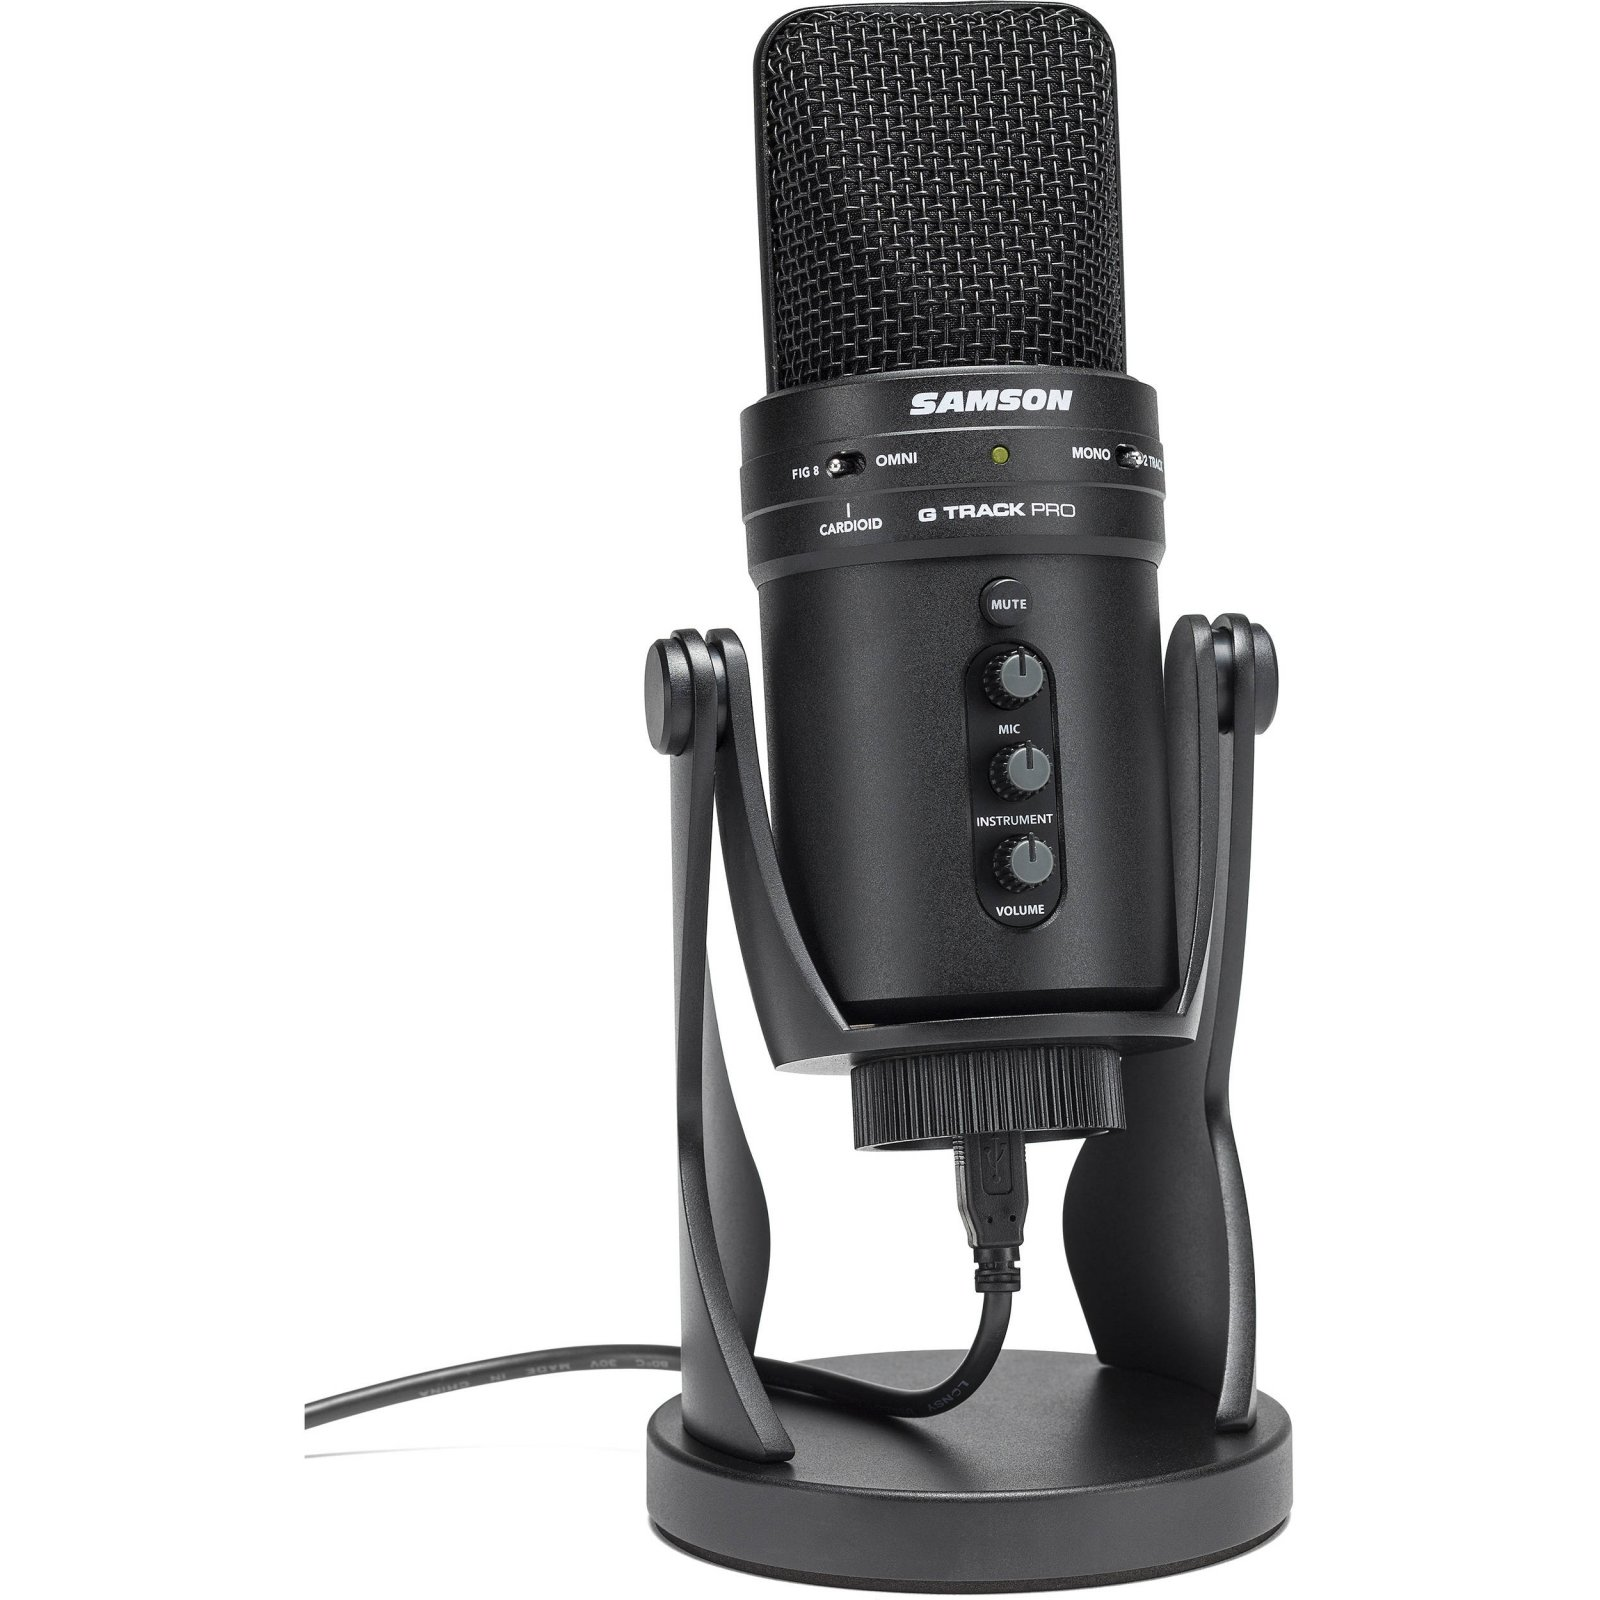 Samson G-Track Pro USB Microphone with Built-In Audio Interface (Black)